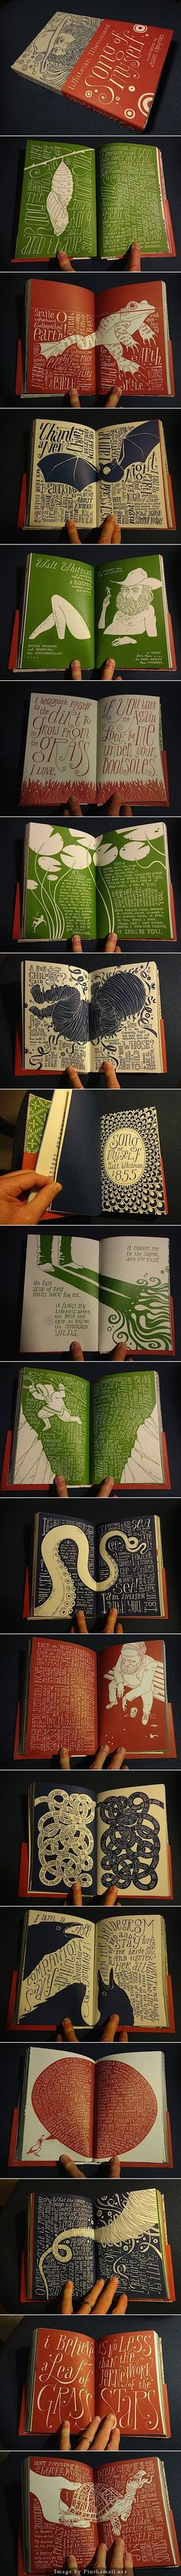 ✍ Sensual Calligraphy Scripts ✍ initials, typography styles and calligraphic art - Hand Illustrated Book by Allen Crawford